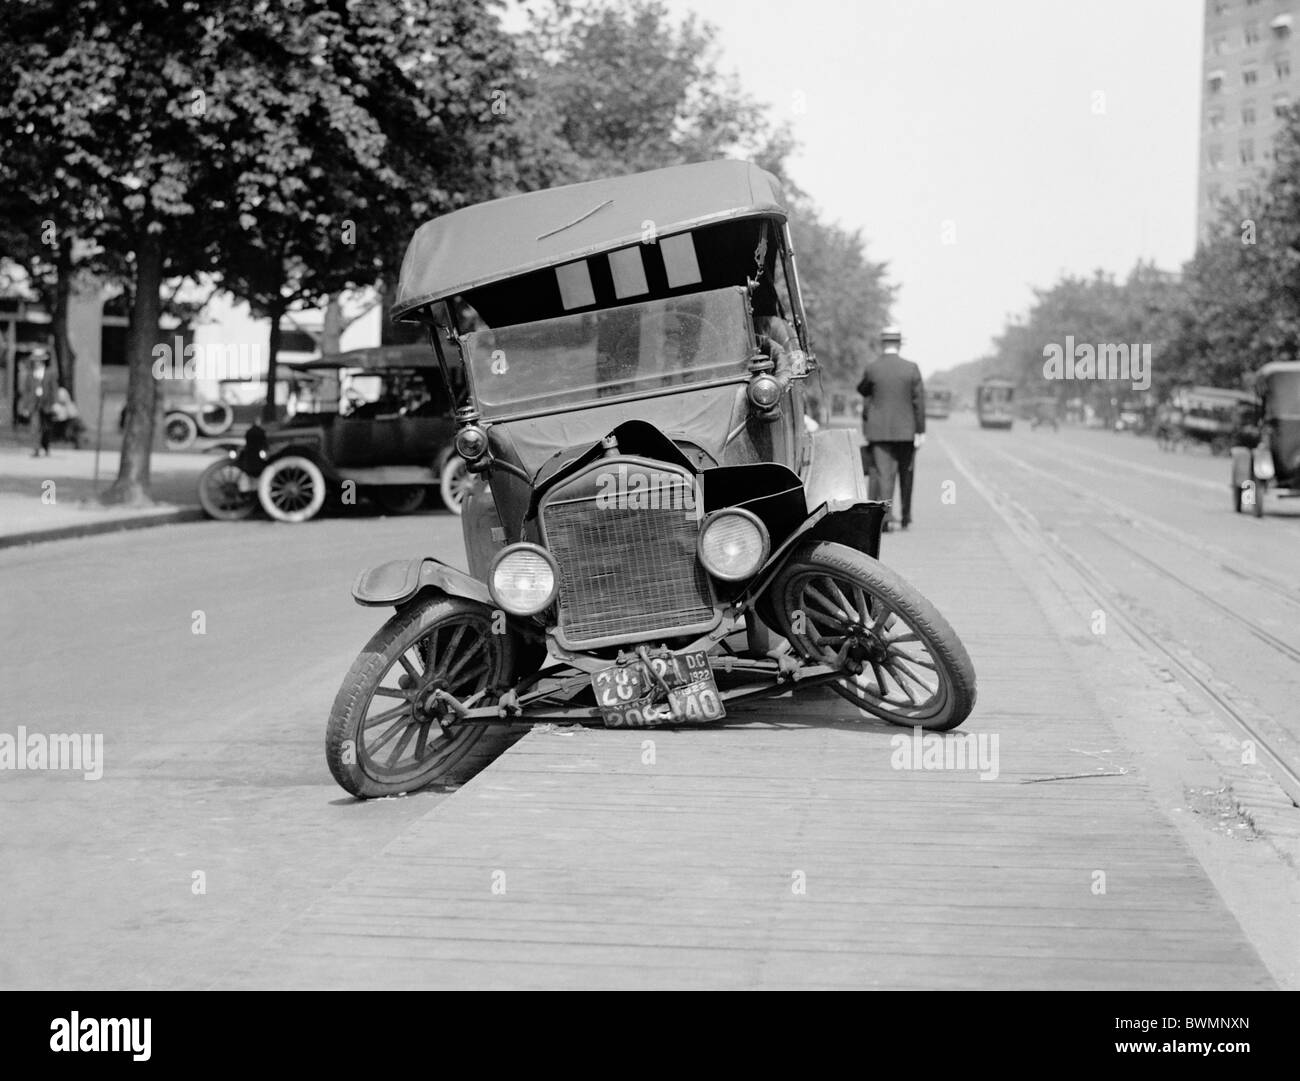 Vintage photo vers 1922 d'une voiture Ford du naufrage dans un accident d'automobile aux Etats-Unis. Photo Stock